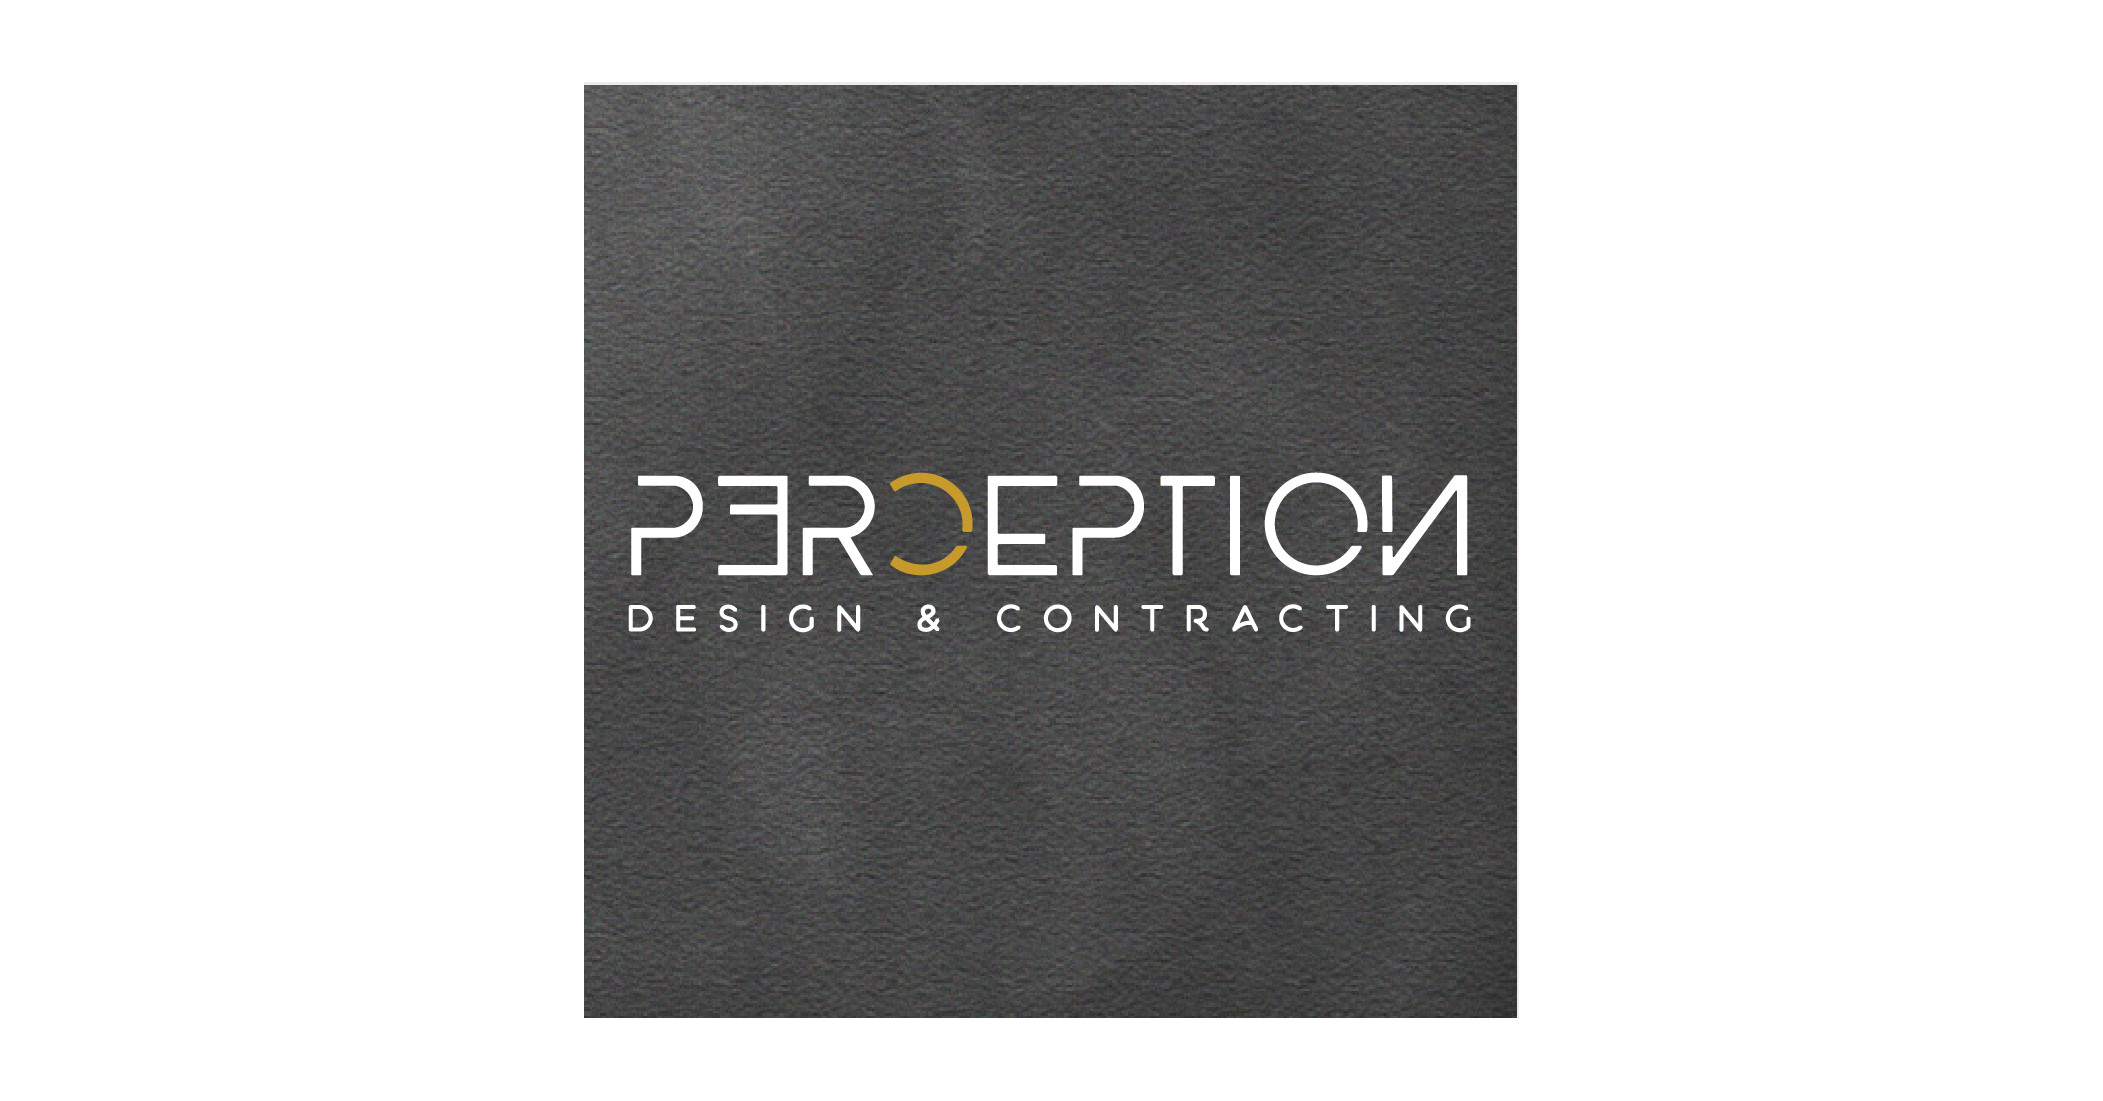 صورة Job: Interior Designer at Perception for Design & Contracting in Cairo, Egypt